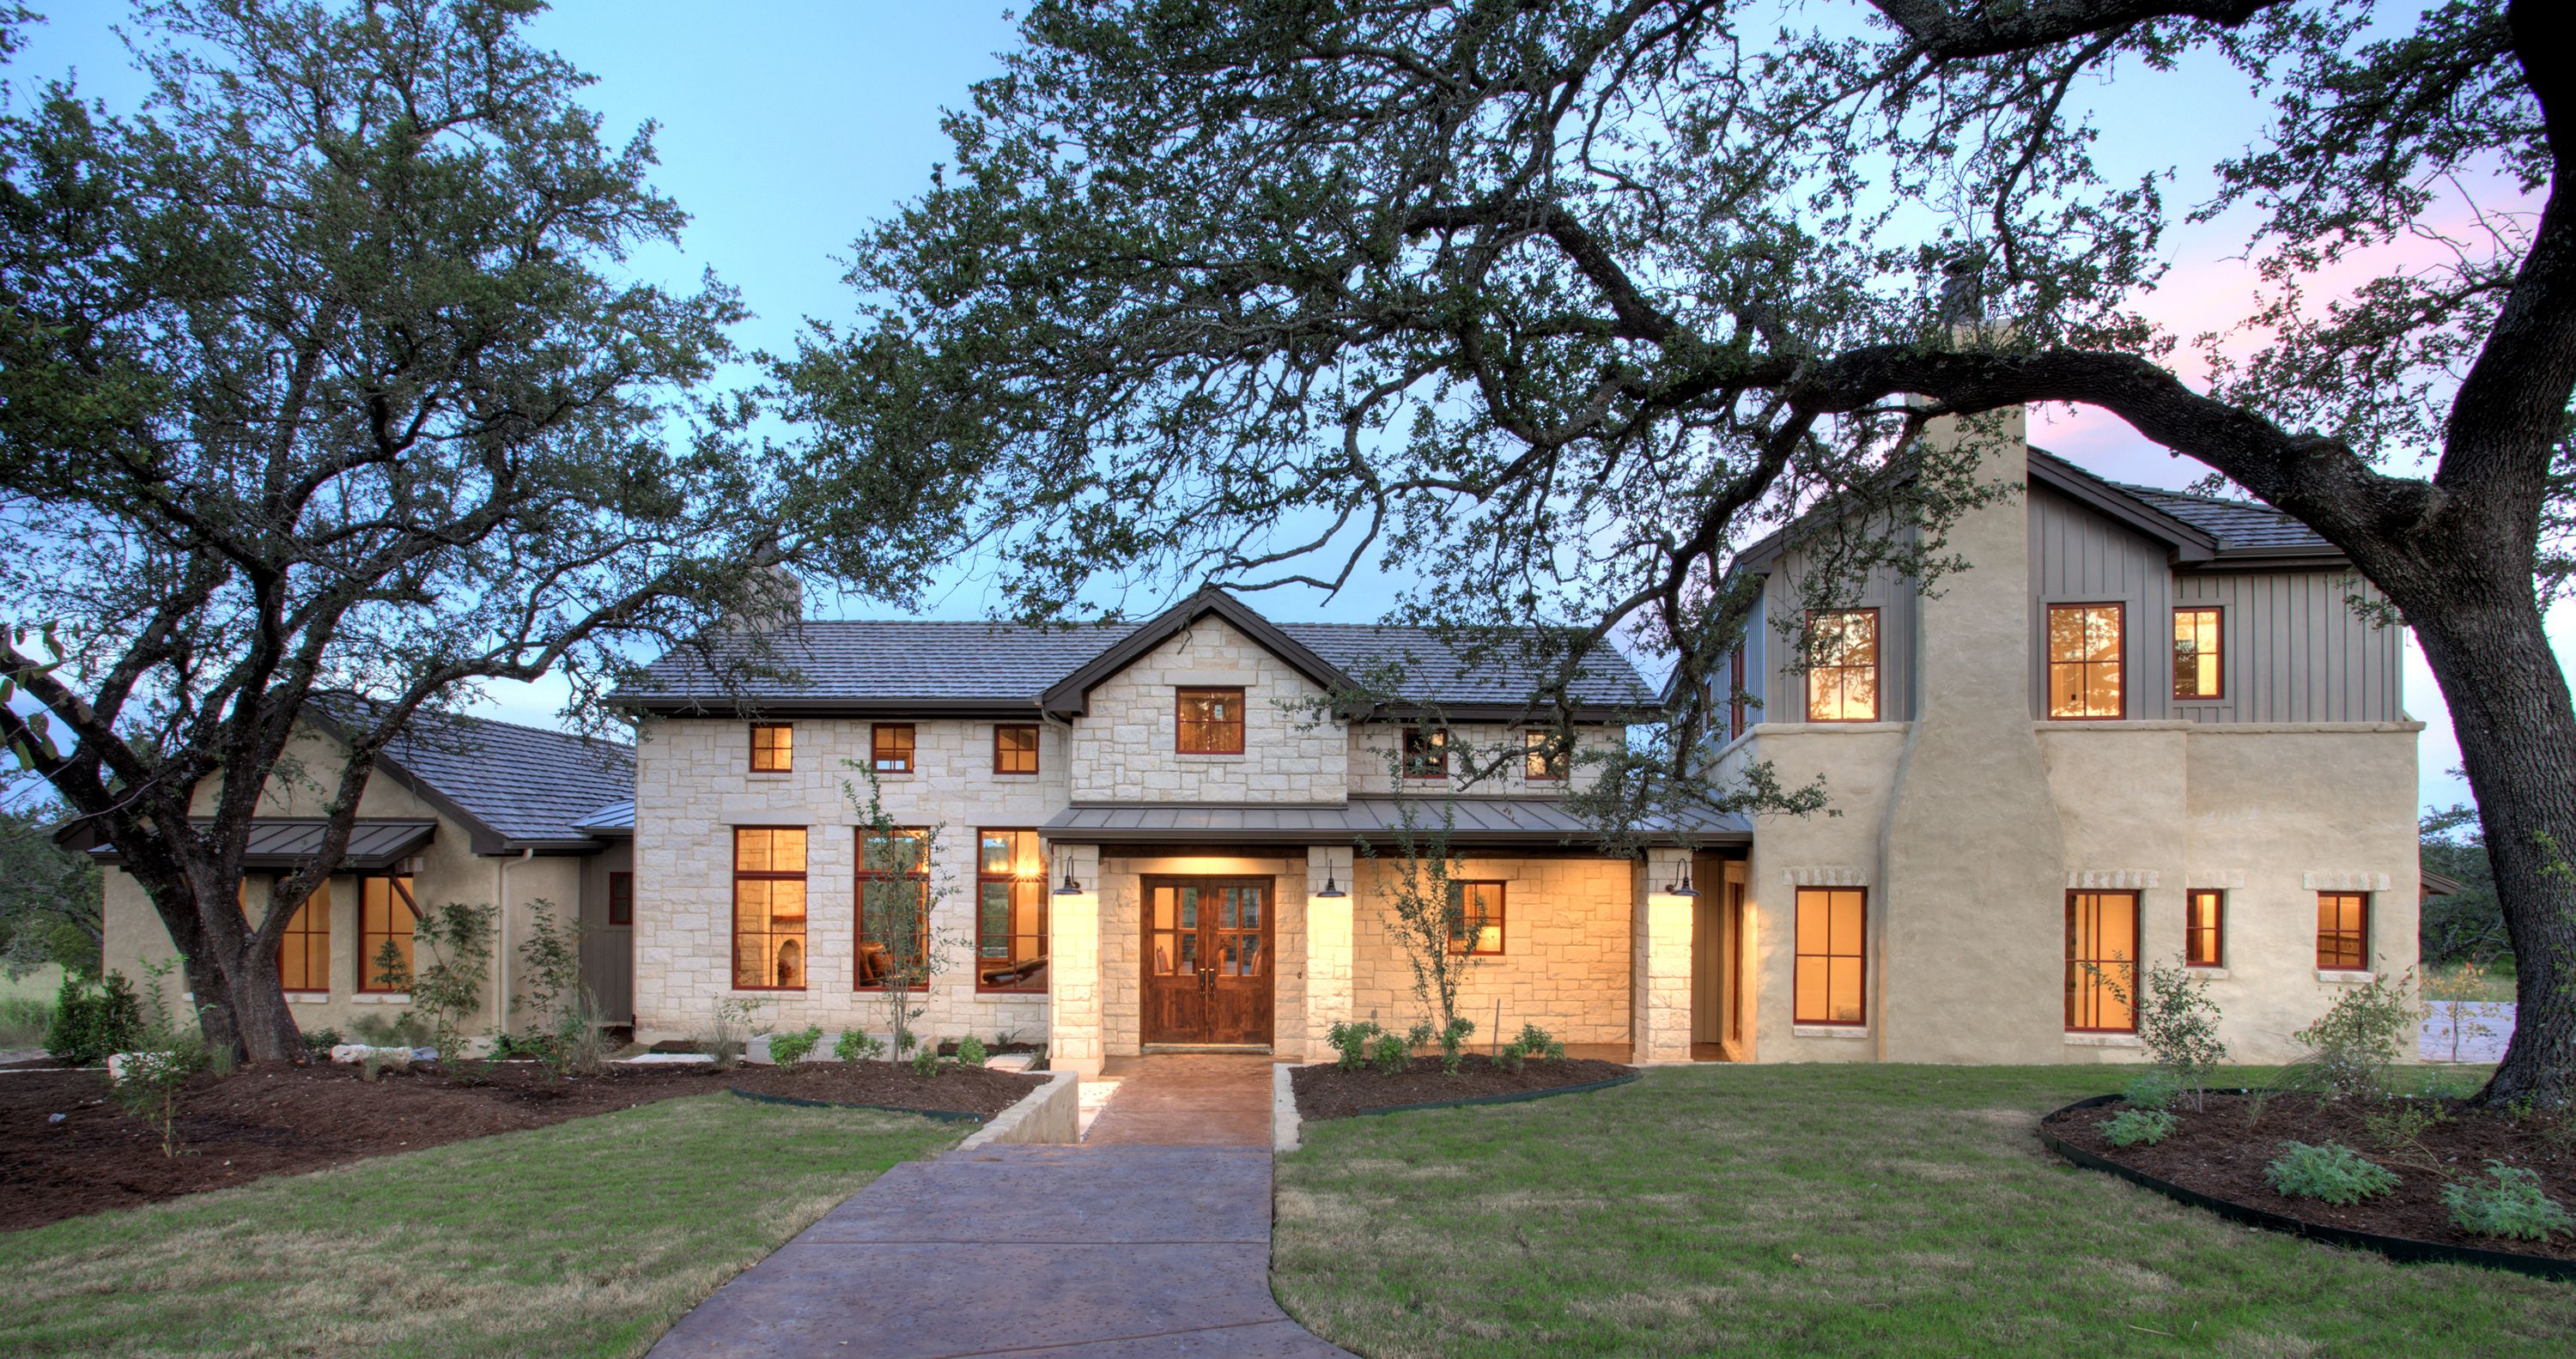 Texas hill country architecture floor plans joy studio for Hill country style home plans